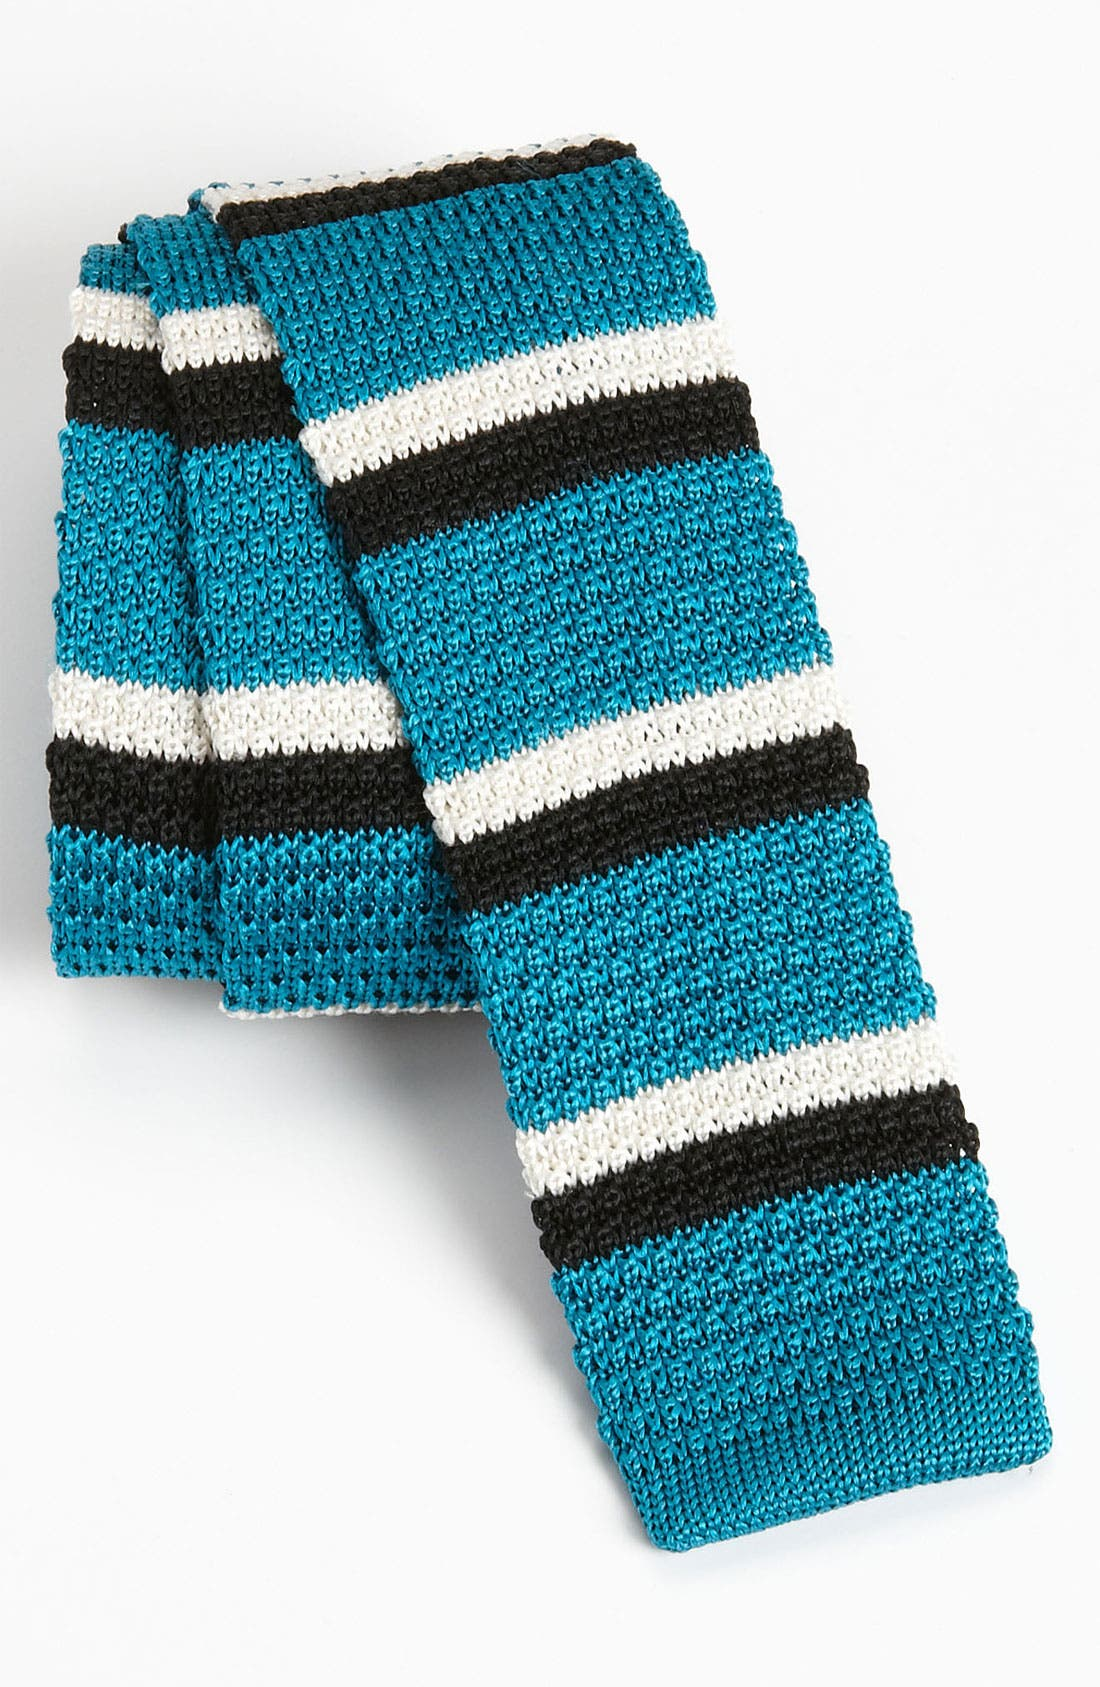 Alternate Image 1 Selected - The Tie Bar 'Next Stripe' Knit Tie (Online Only)